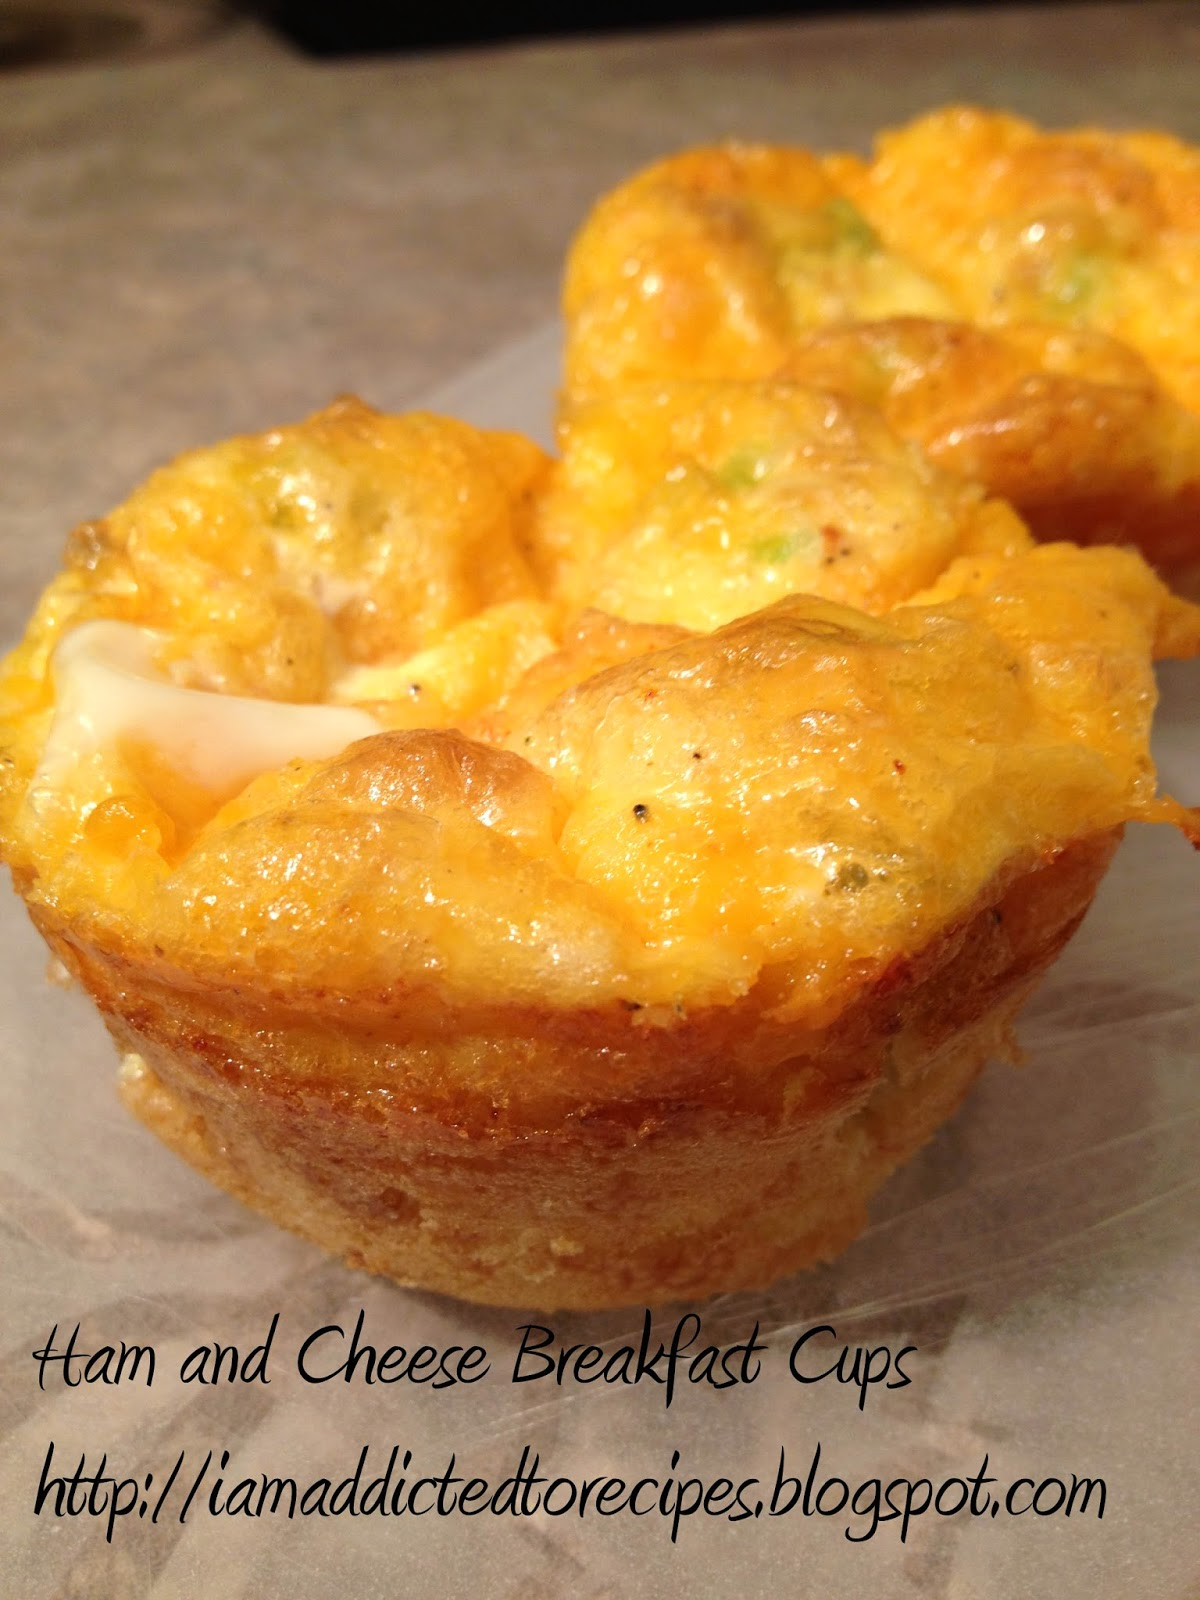 Ham and Cheese Breakfast Cups | Addicted to Recipes